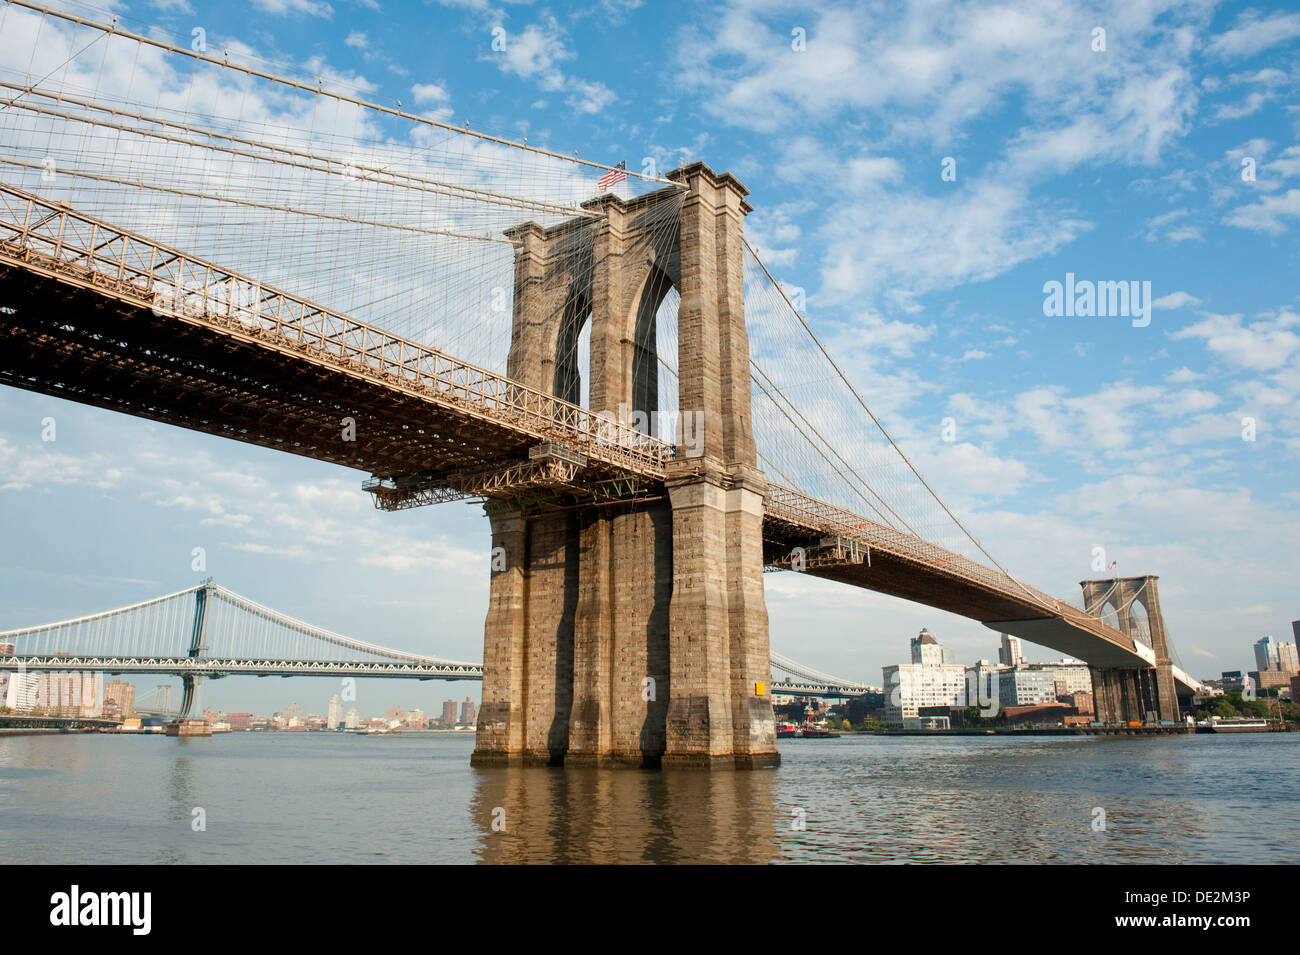 Brooklyn Bridge, a suspension bridge spanning the East River, with the Manhattan Bridge at the rear, Two Bridges District - Stock Image